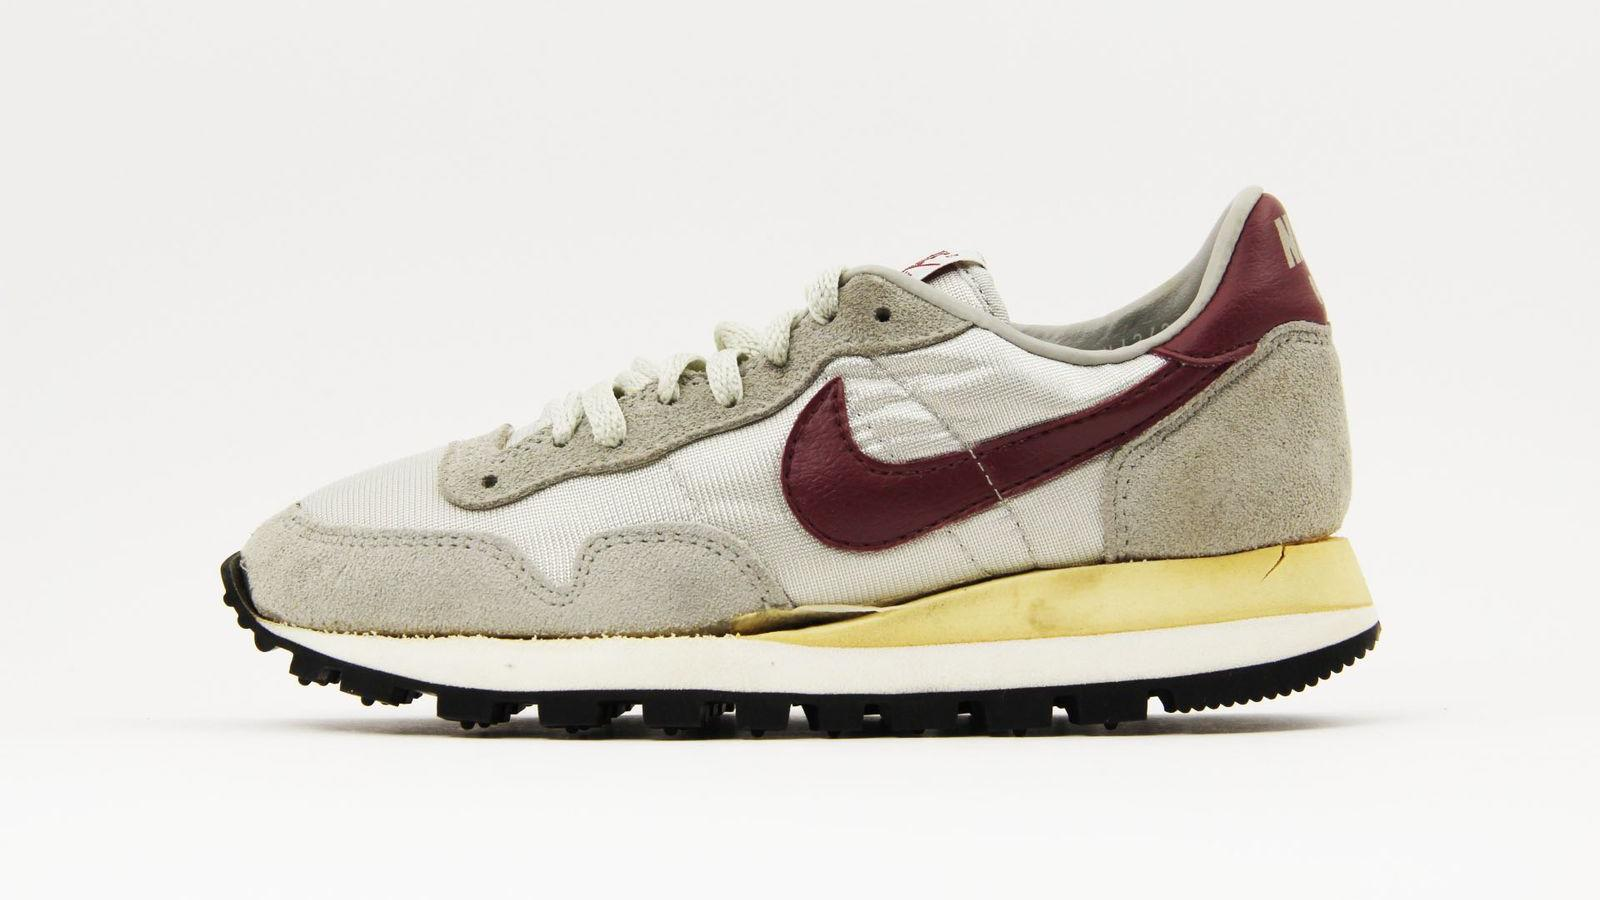 256bf7cfa52 Nike Air Zoom Pegasus History and Facts - Nike News